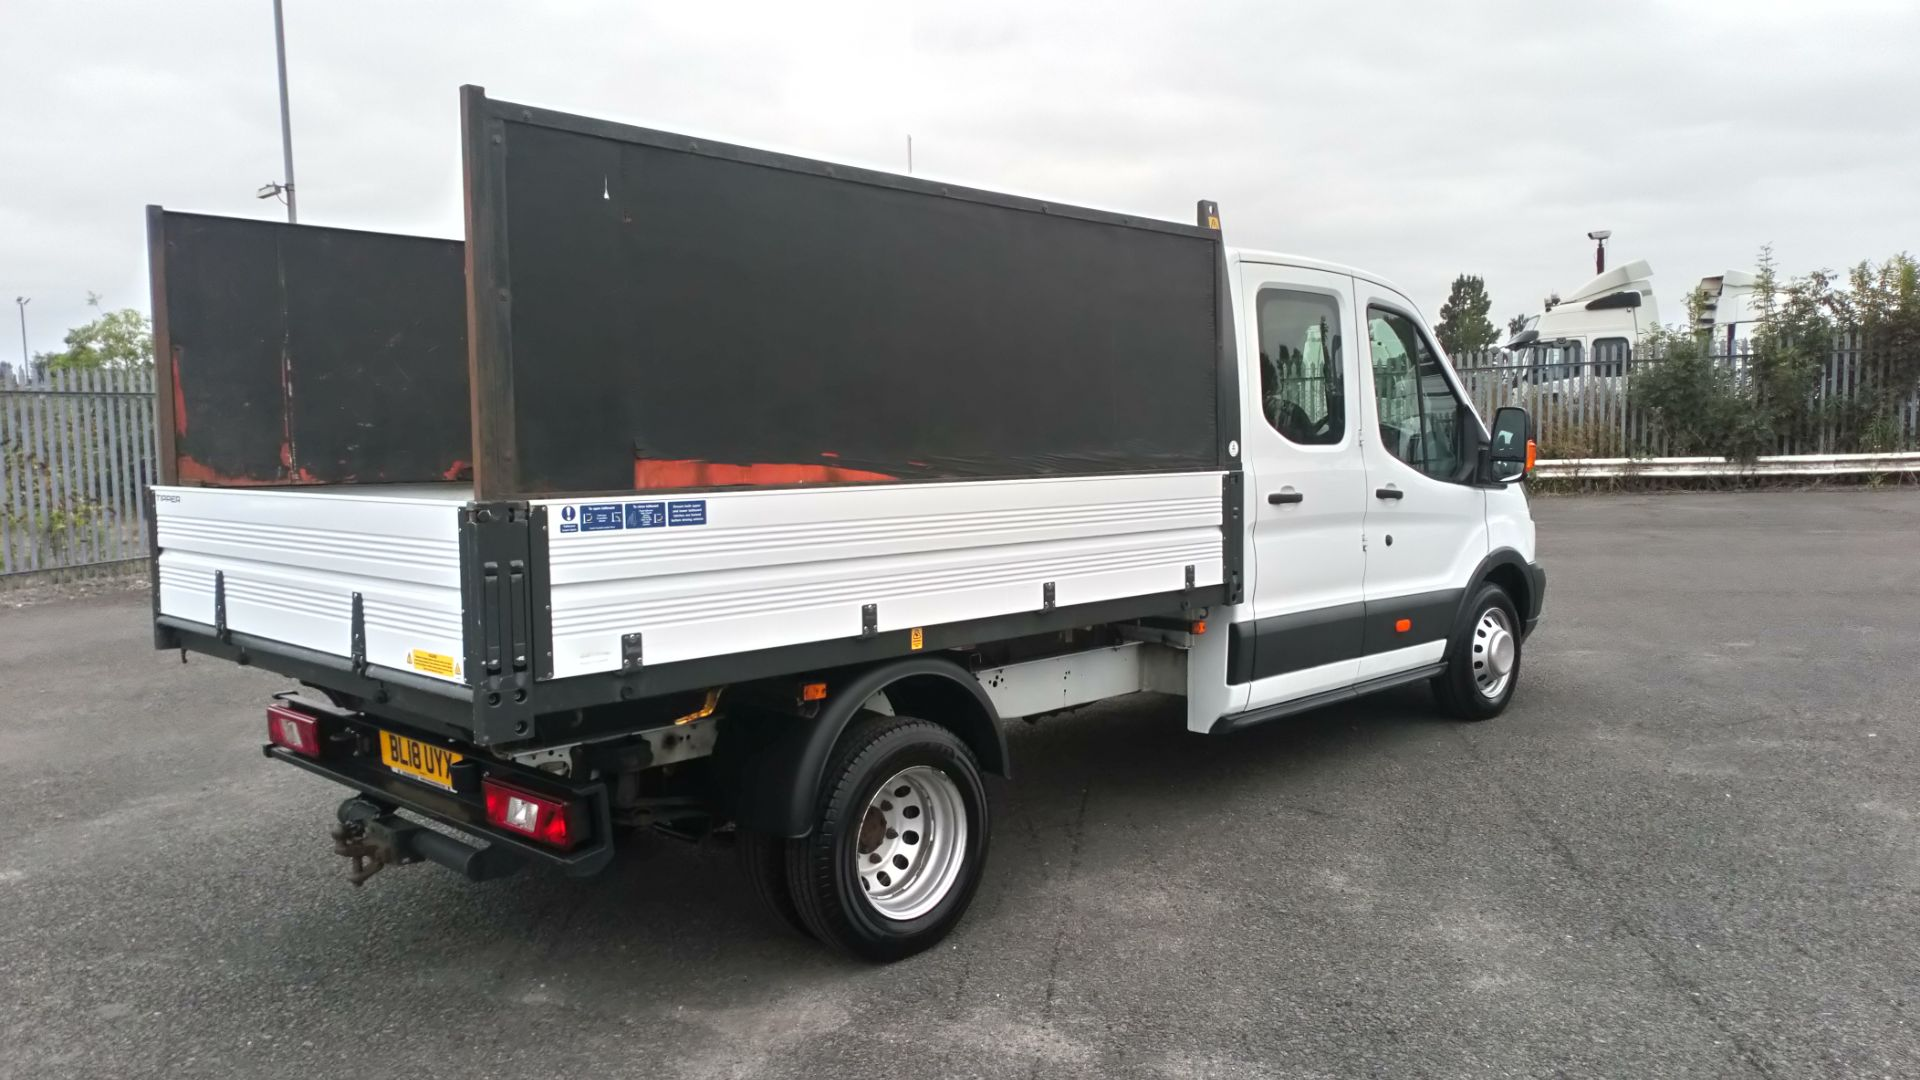 2018 Ford Transit 2.0 Tdci 130Ps H2 Double Cab Tipper (BL18UYX) Image 7